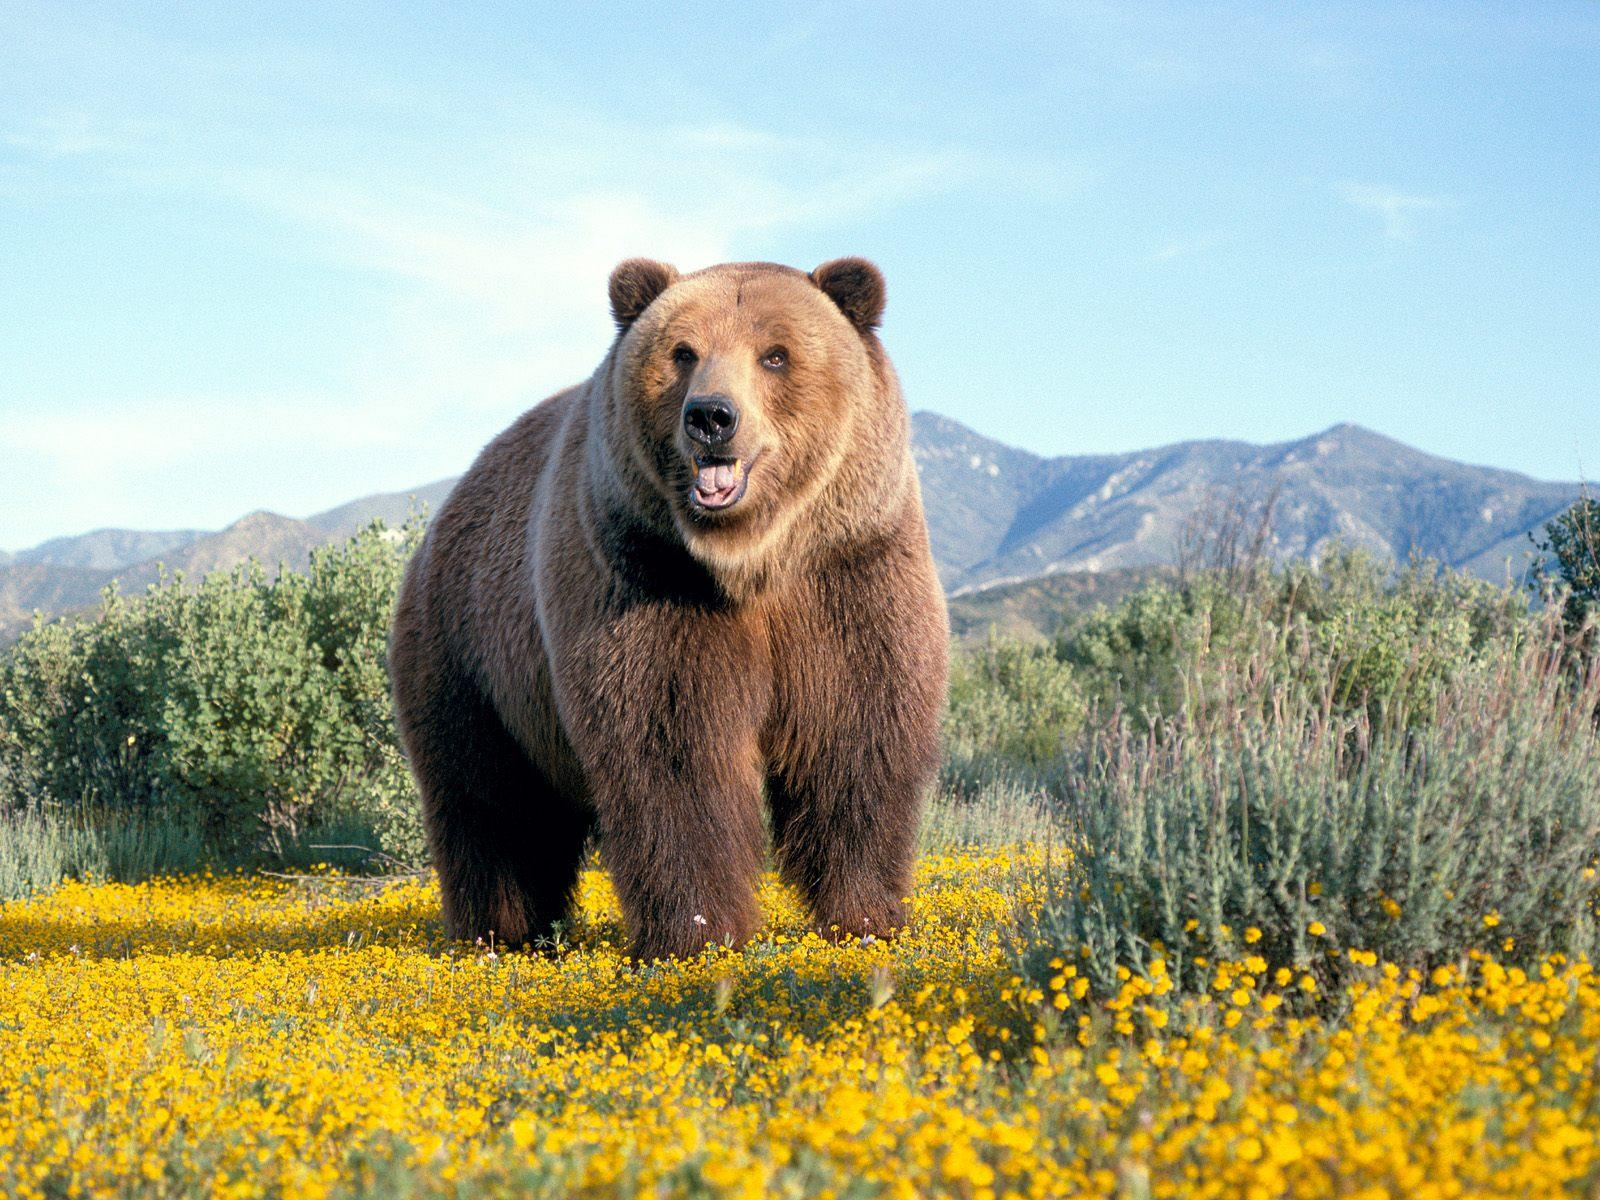 A big huge brown bear and yellow flowers and green bushes and trees on this desktop wallpaper.